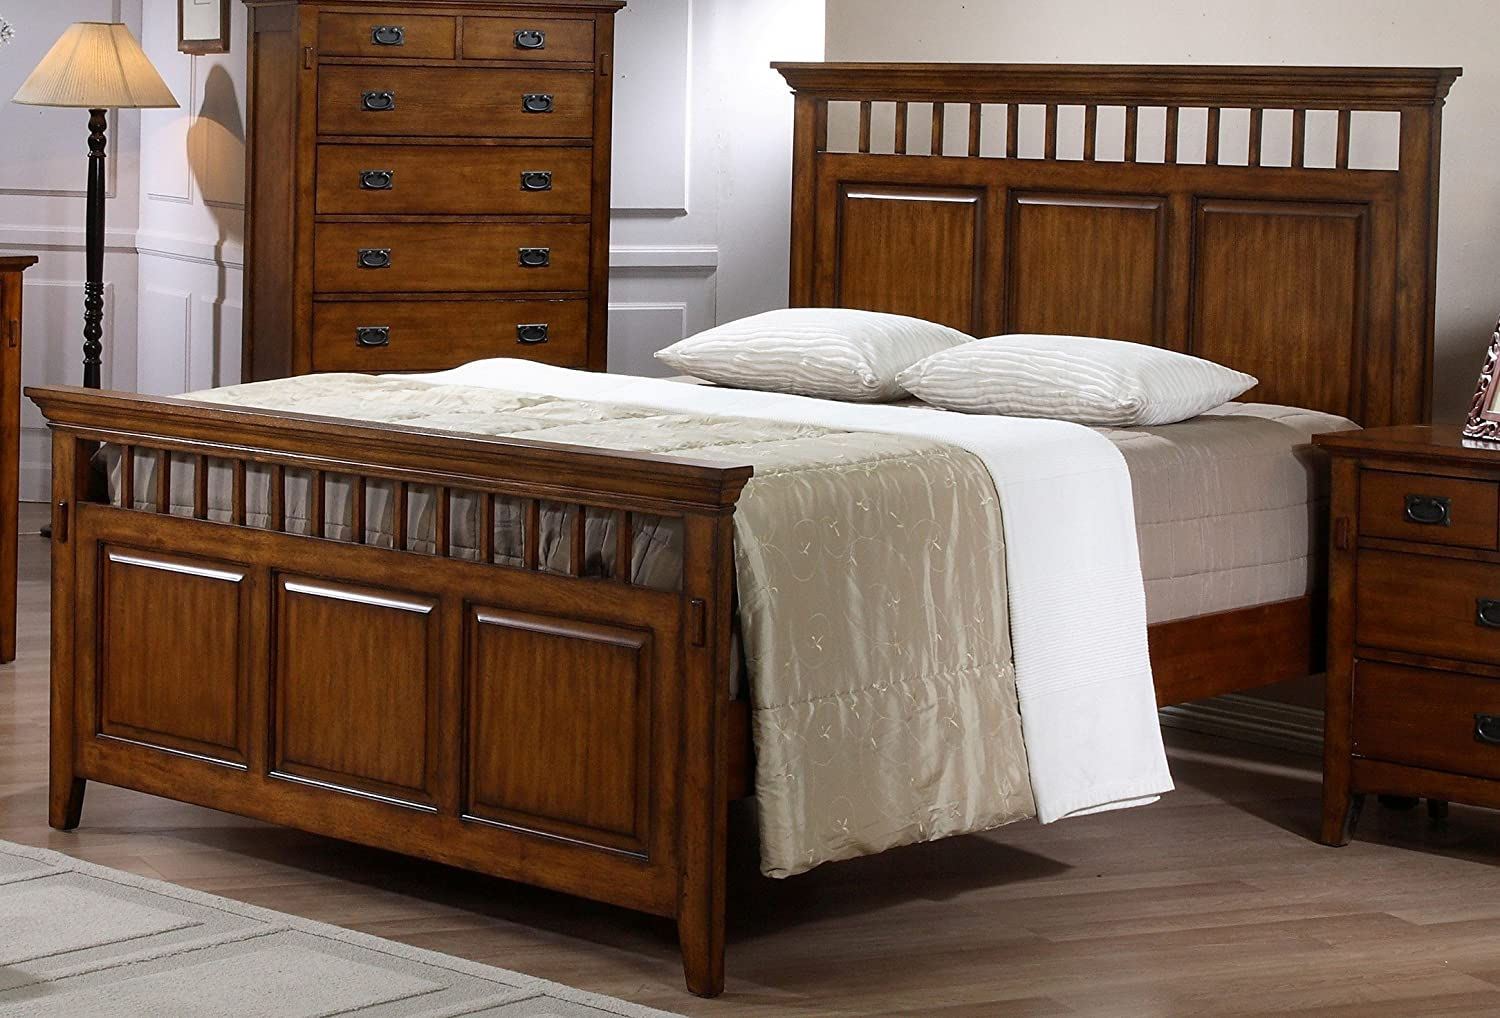 Sunset Trading Tremont Bedroom Queen Bed, Warm chestnut with satin gloss finish